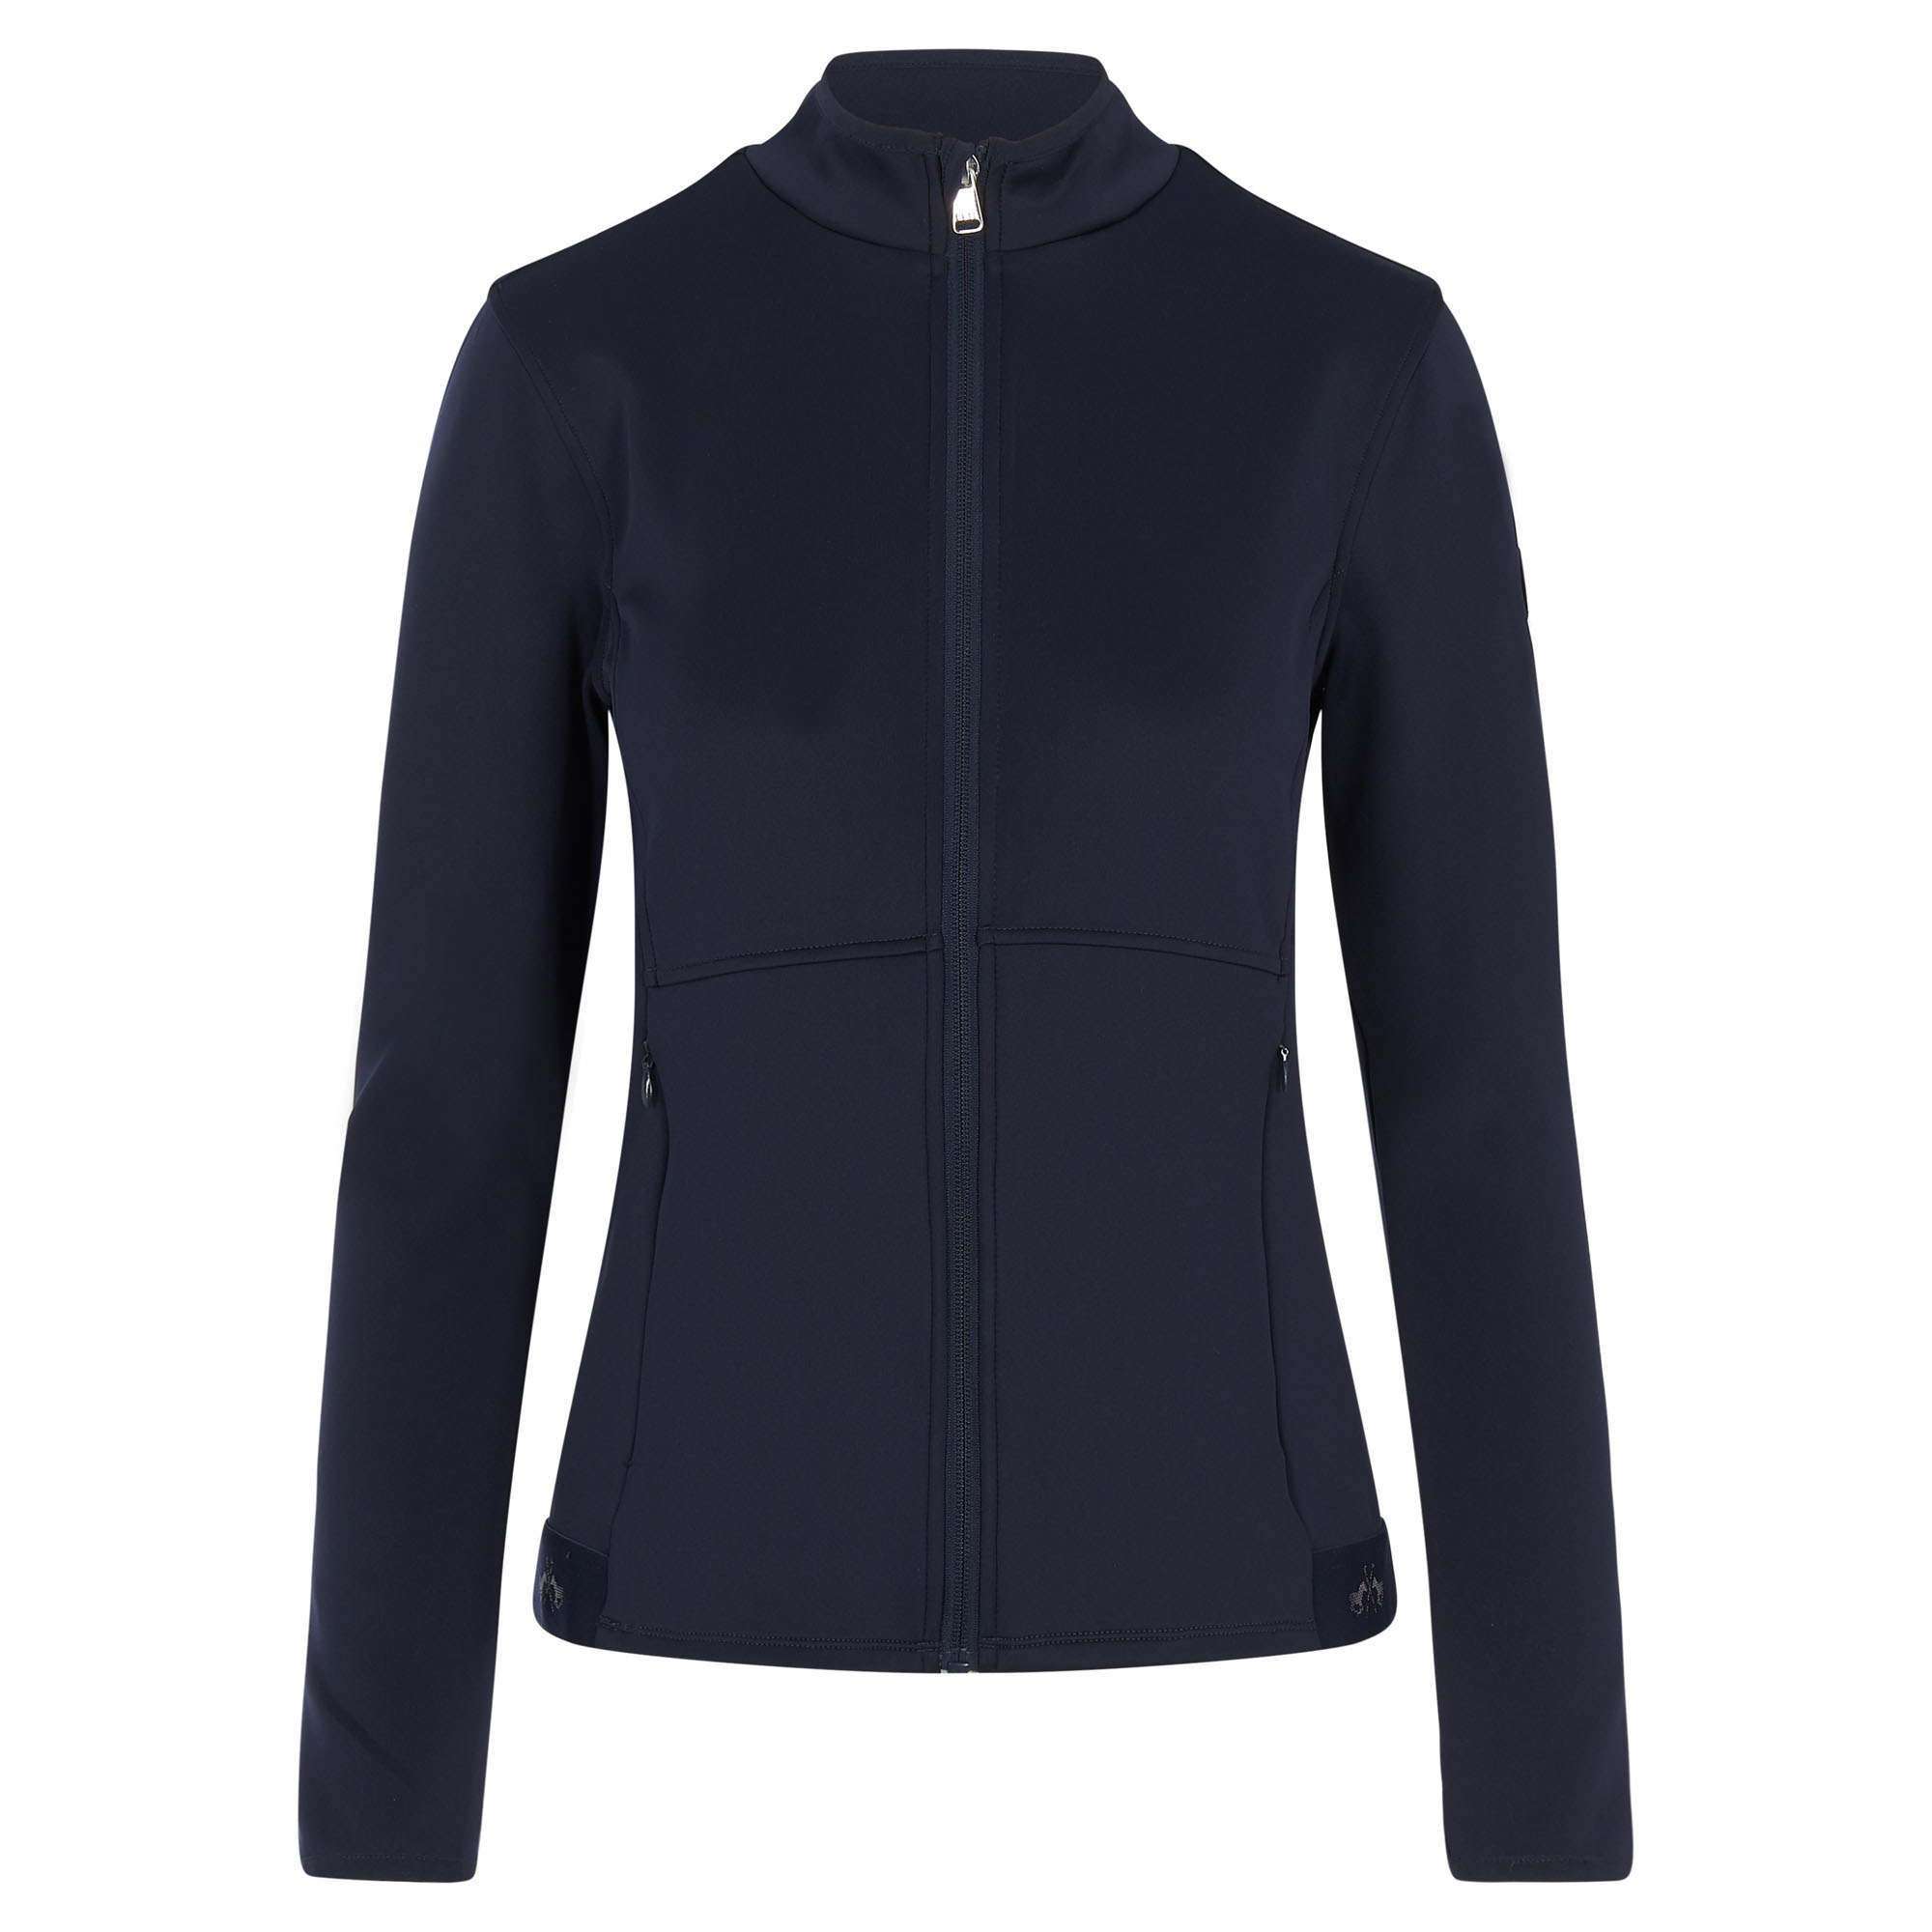 HV-POLO Lucy Technical Full Zip Top - Navy - Divine Equestrian